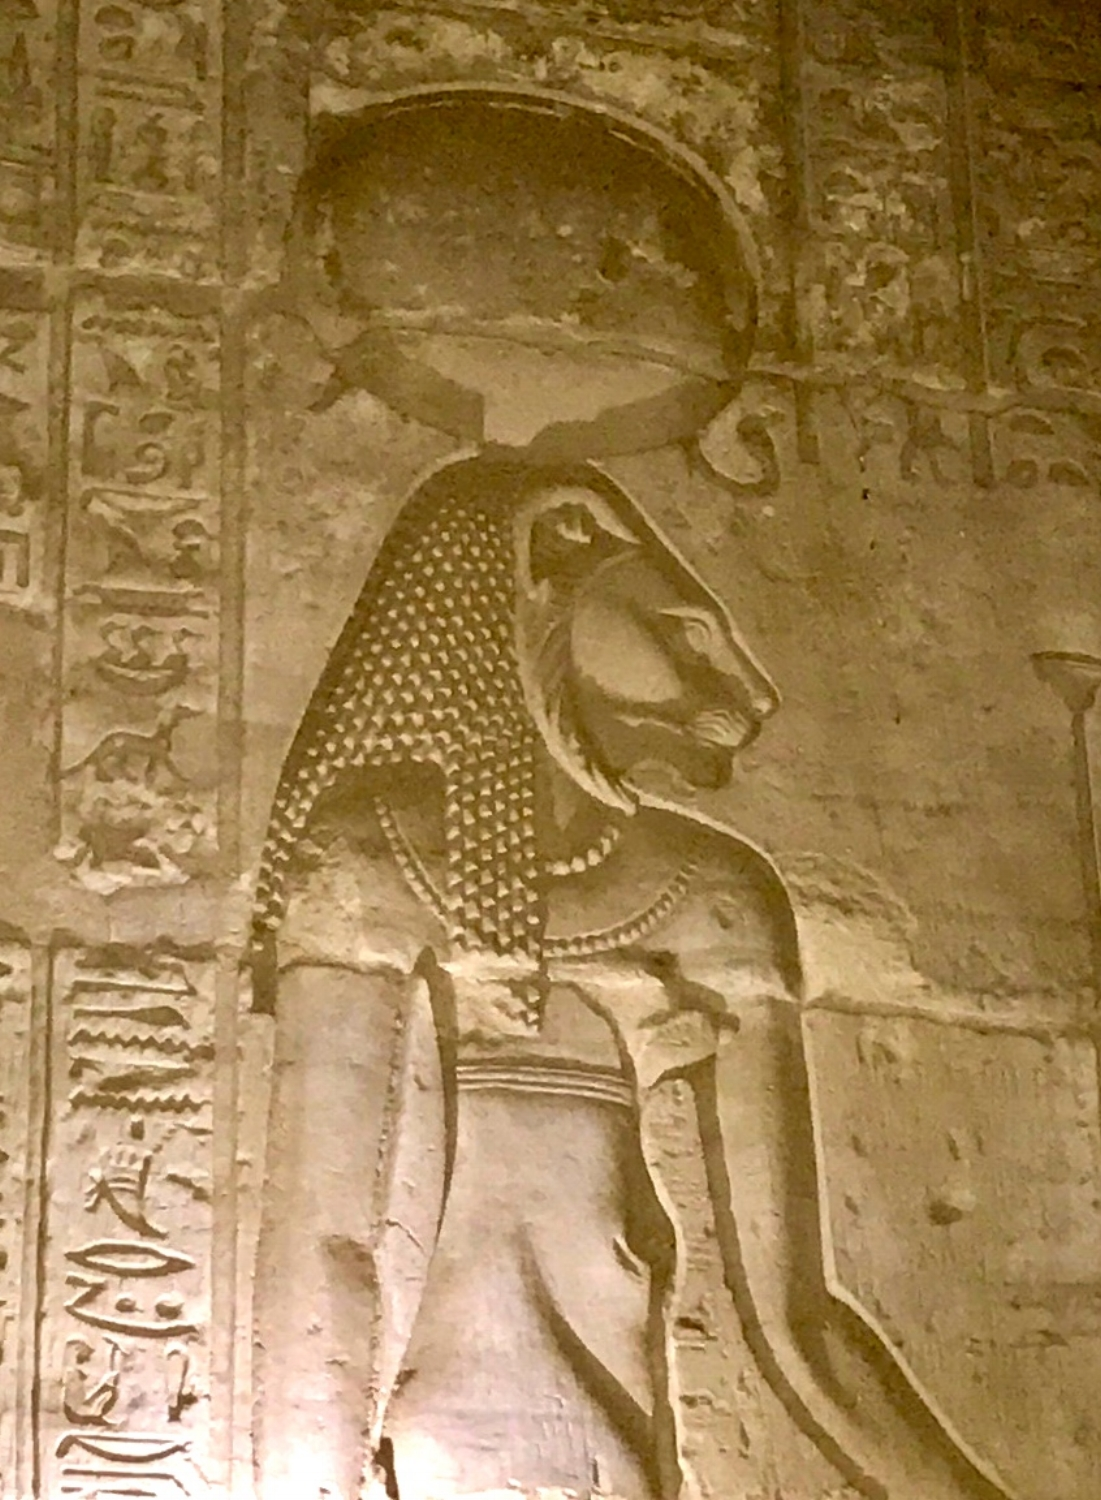 Sekhmet on the Temple walls